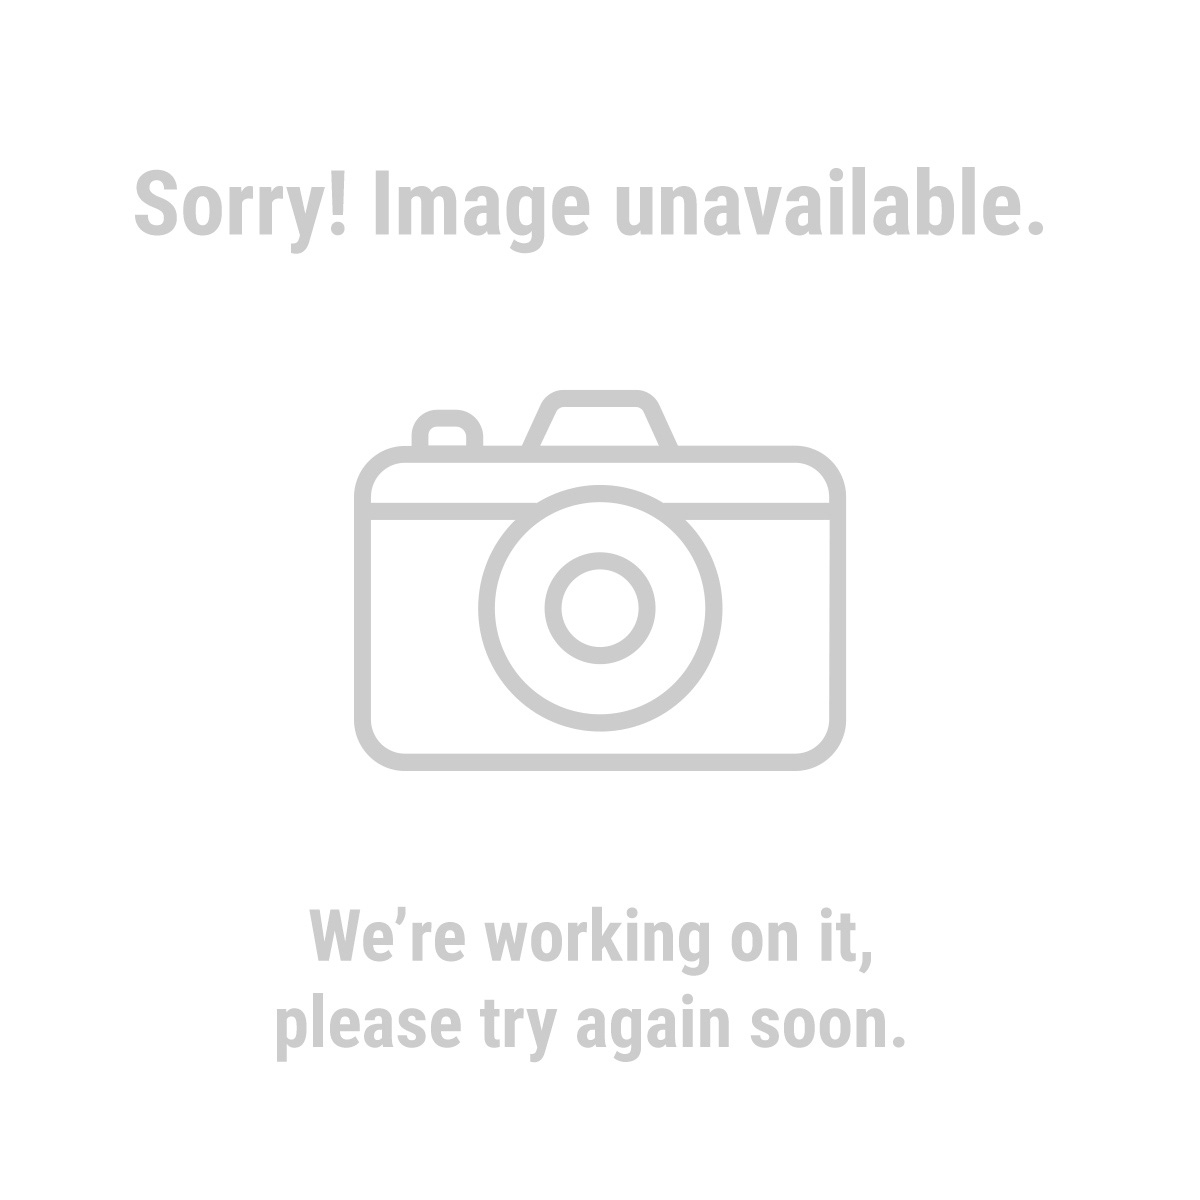 Haul-Master® 62666 1195 lb. Capacity 48 in. x 96 in. Heavy Duty Folding Trailer